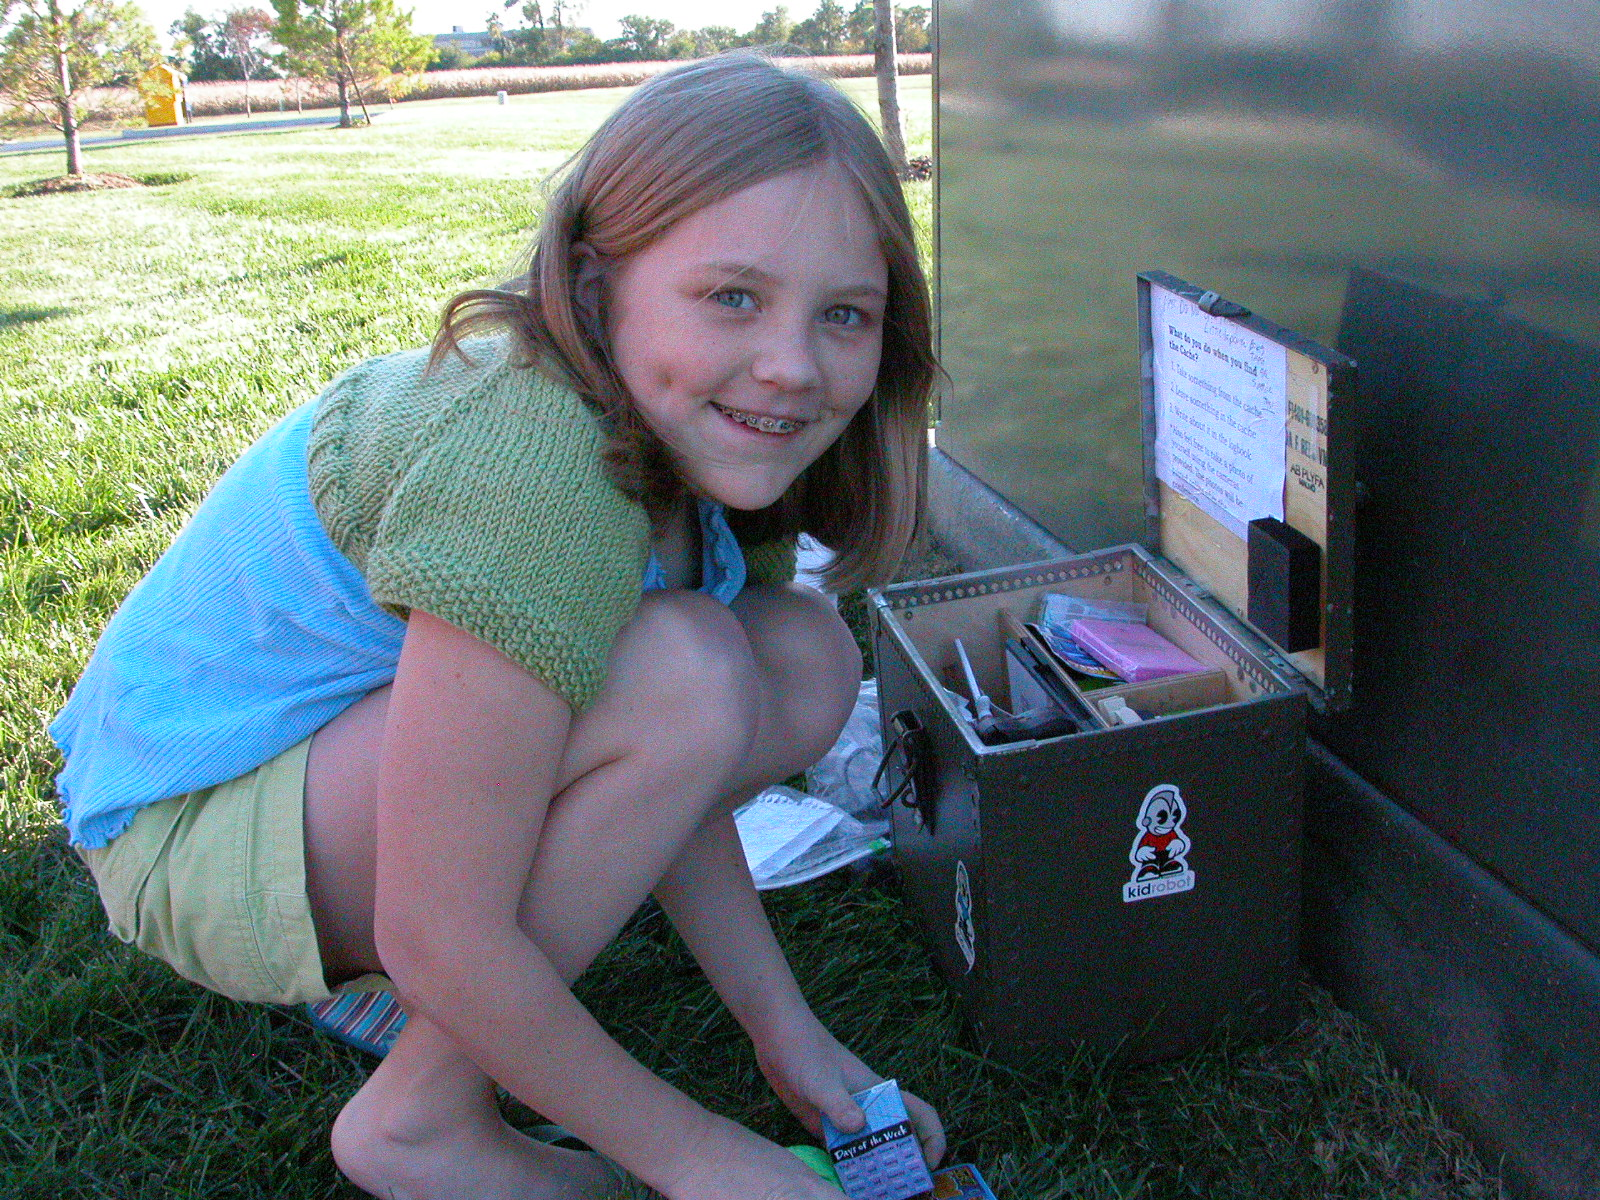 What's in the geocache?